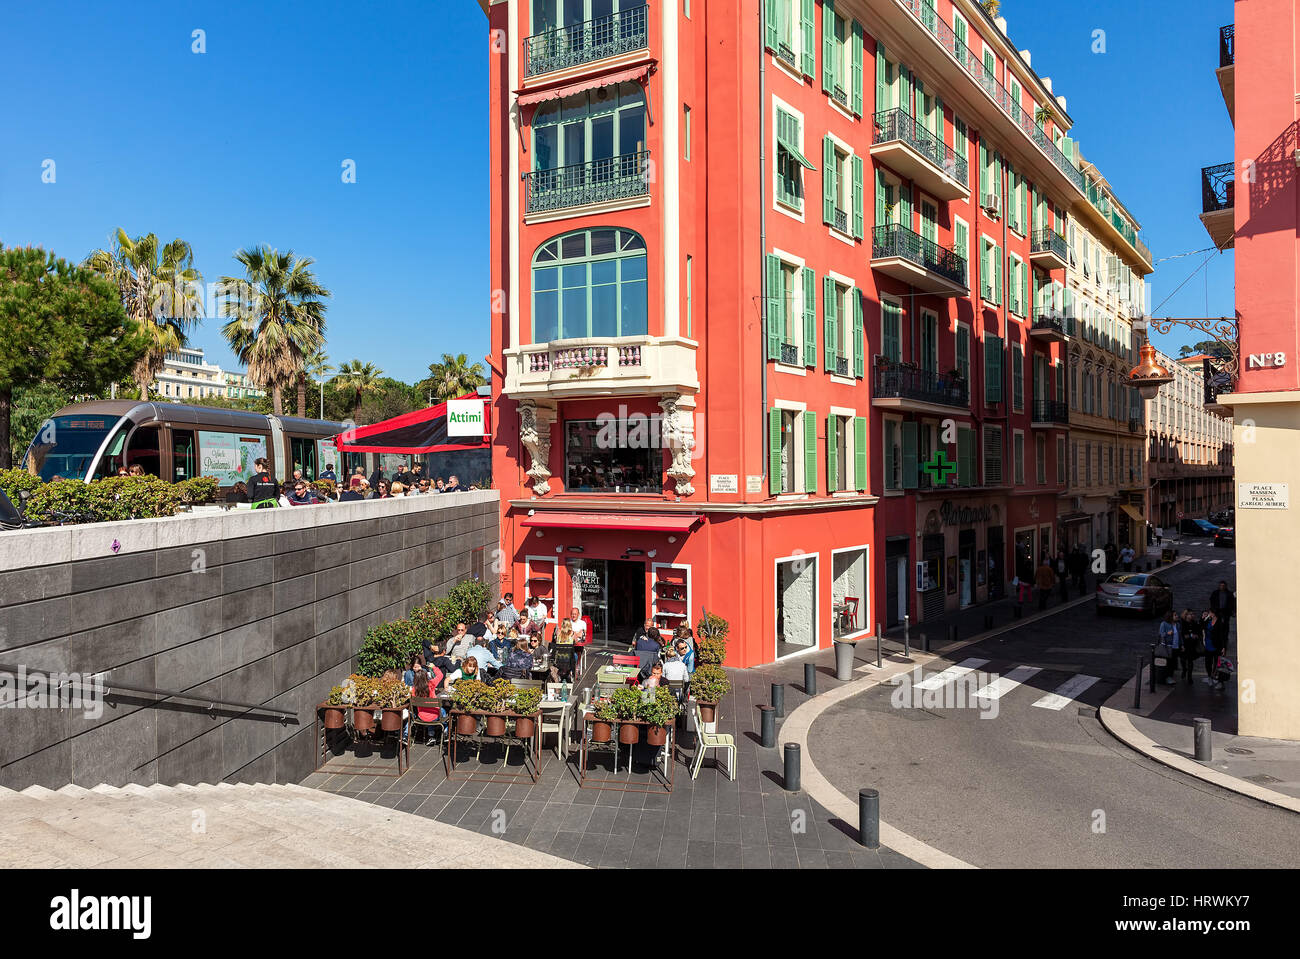 NICE, FRANCE - MARCH 26, 2016: Unusual red building and outdoor restaurant on Place massena in Nice - fifth most - Stock Image